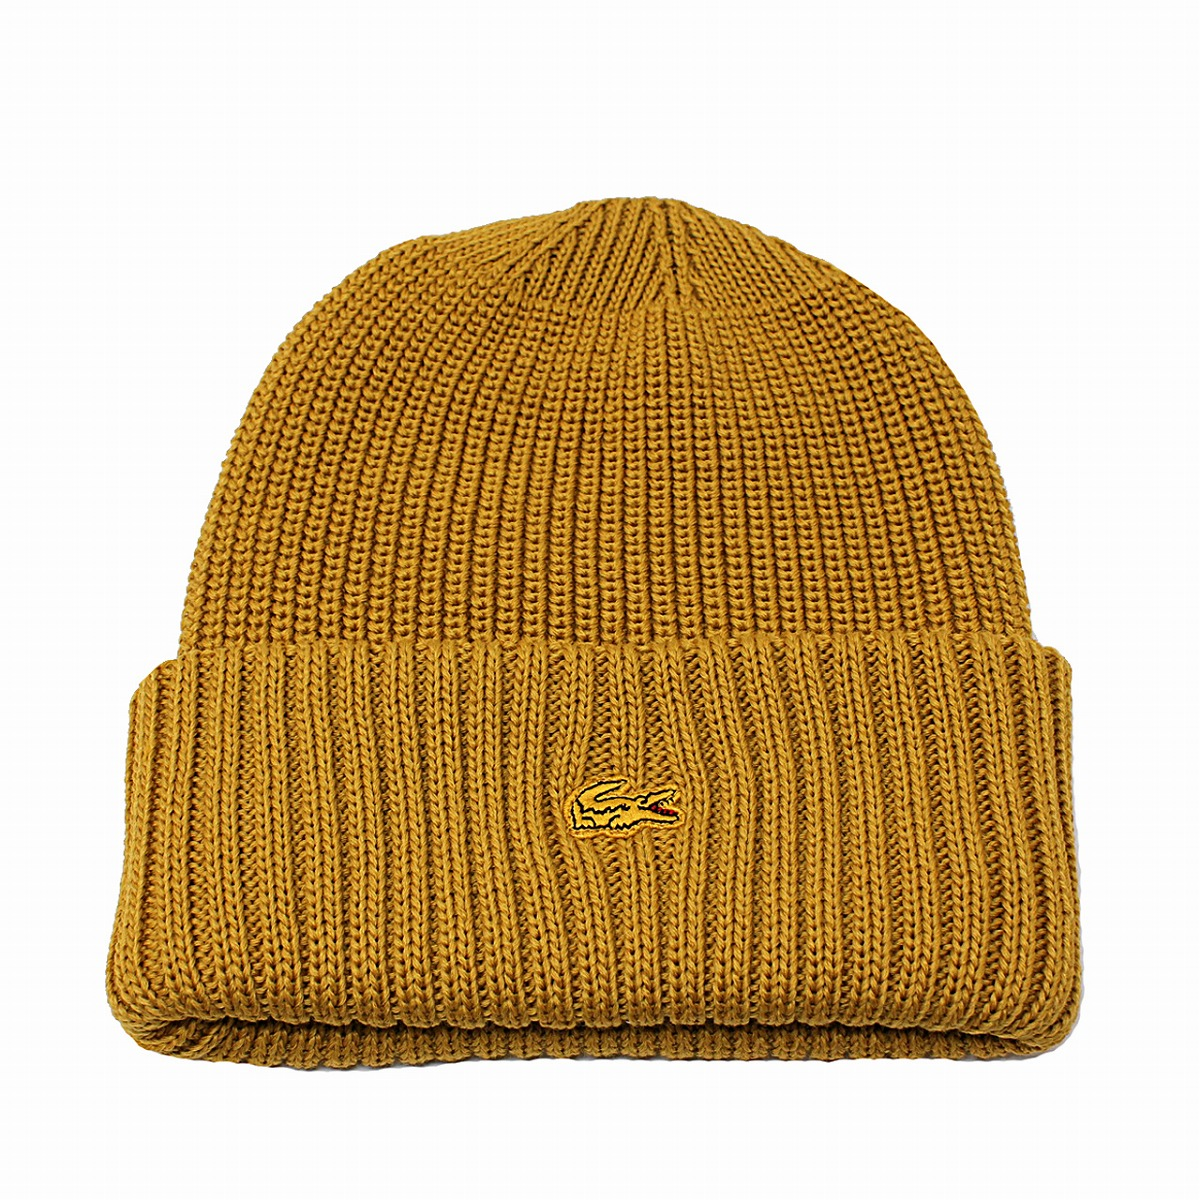 139db1ed4 The LACOSTE cloth crocodile embroidery high-quality men gap Dis Lacoste hat  yellow yellow mustard[beanie]adjustable size same day delivery Christmas ...